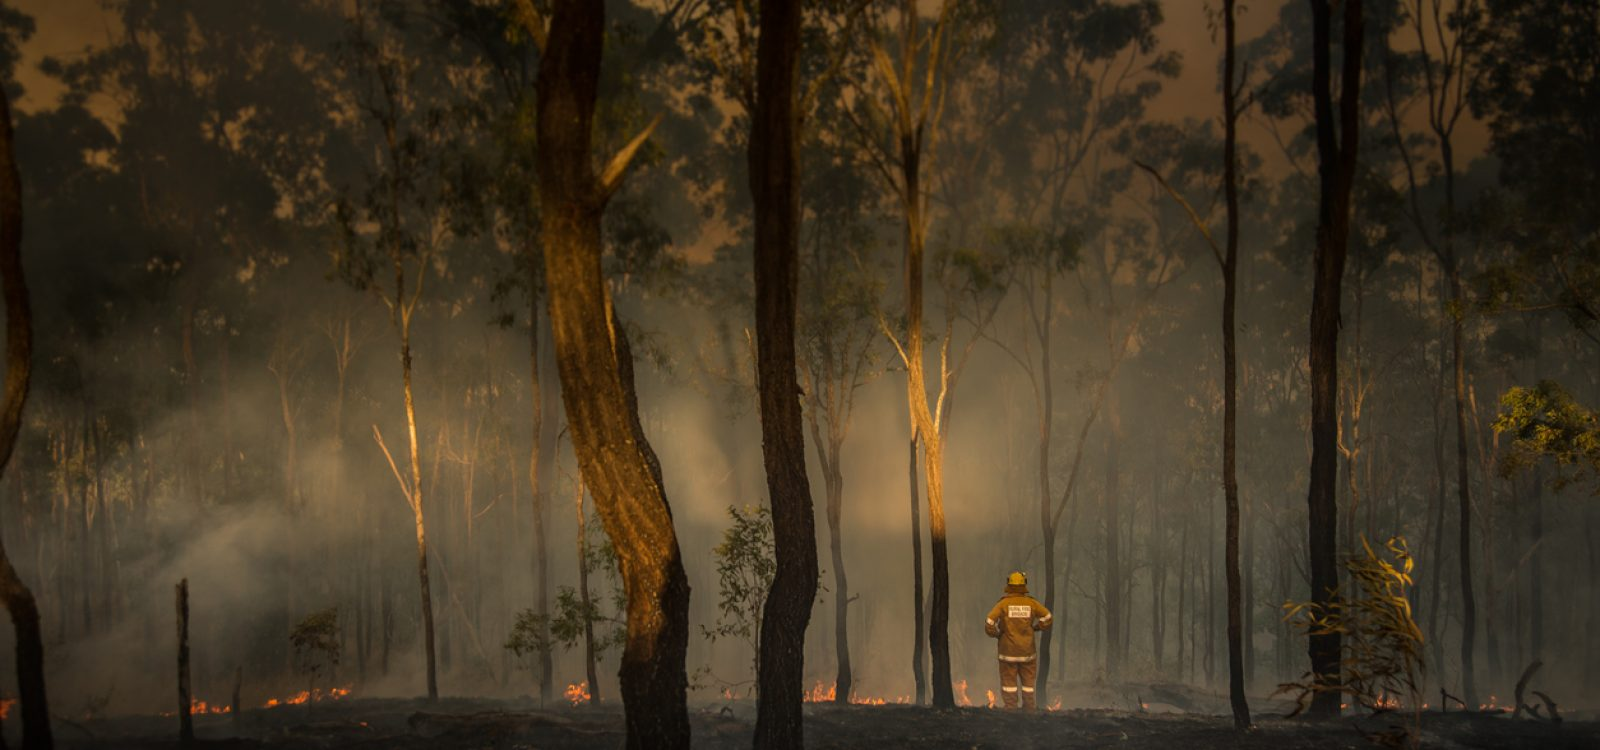 Impact of bushfires on the life insurance industry